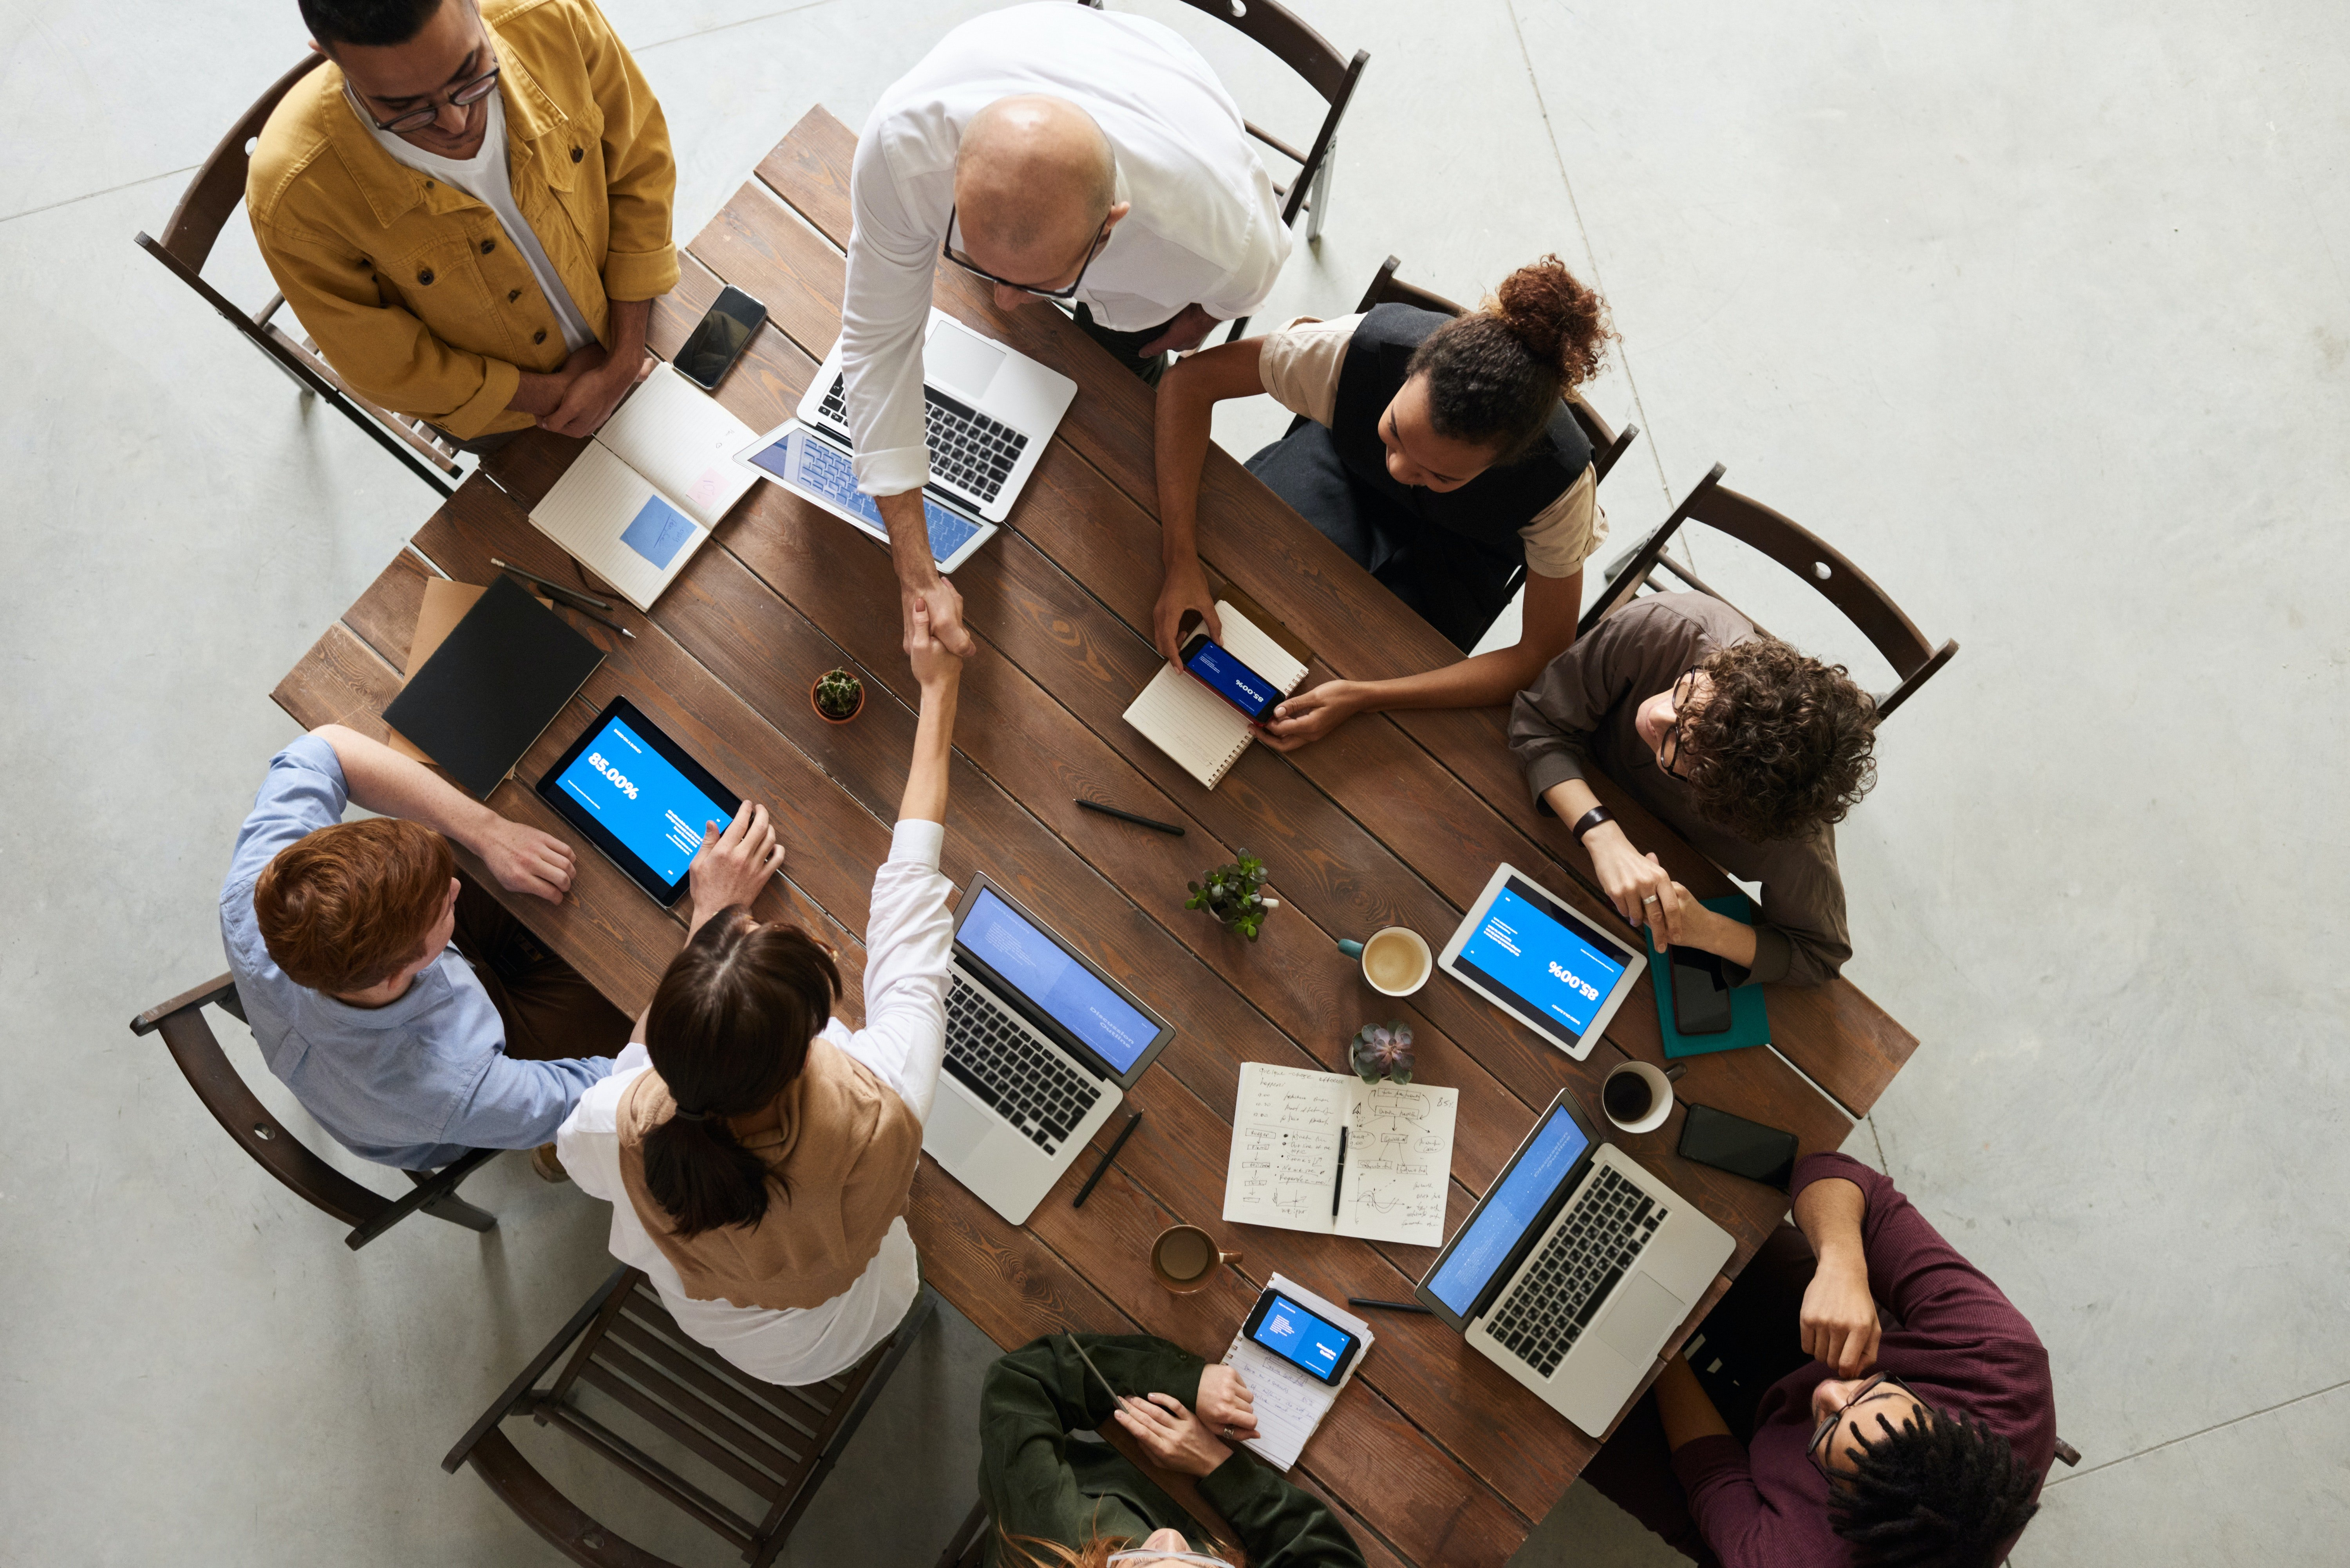 Pictured - An image of people in a meeting | Source: Pexels